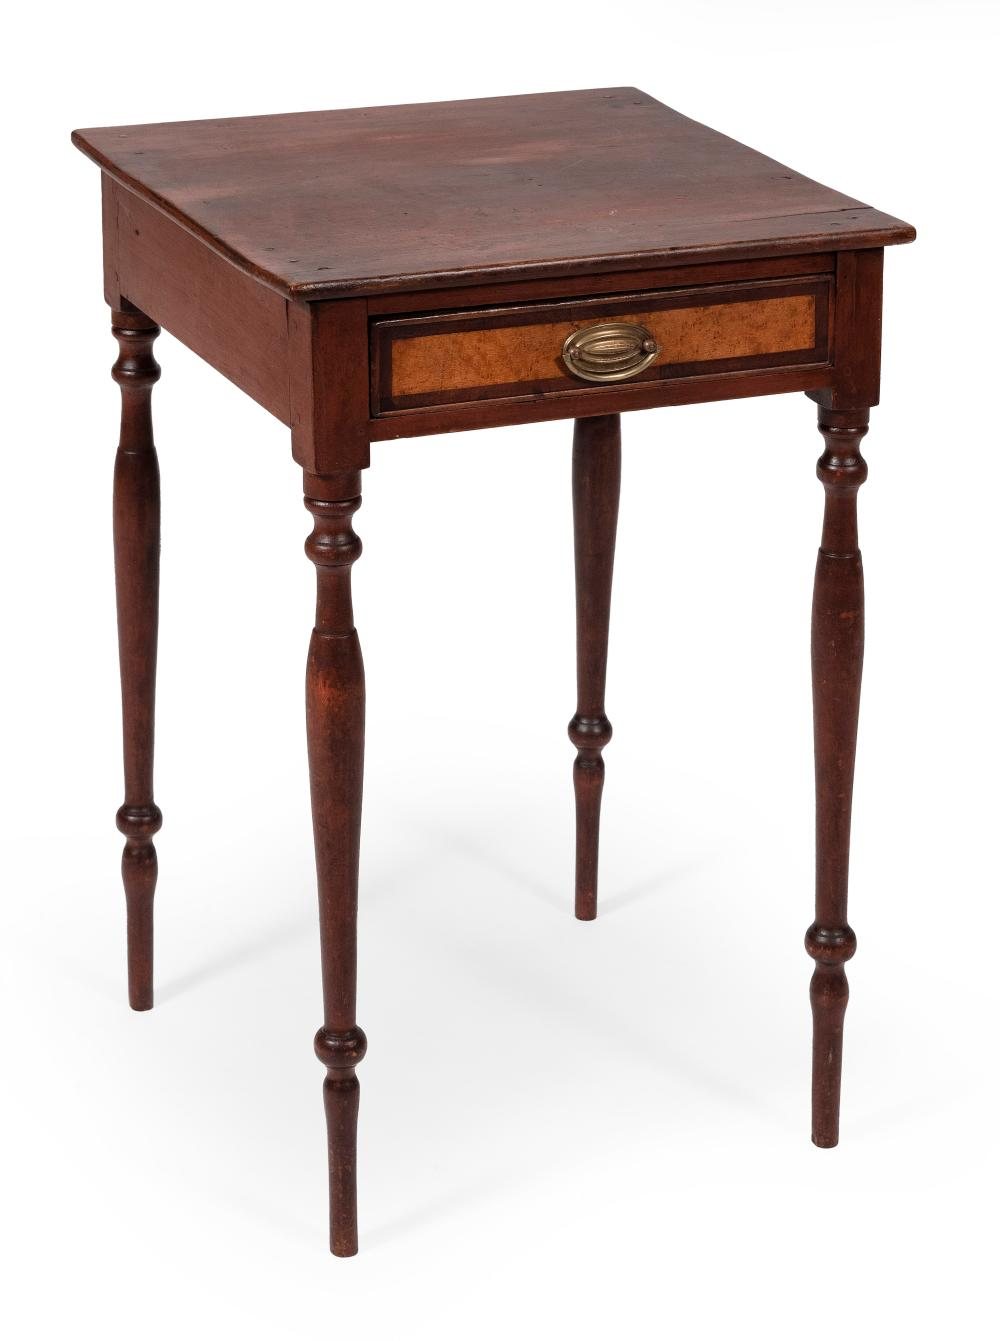 """SHERATON STAND WITH OLD RED FINISH New Hampshire or Southern Maine, Early 19th Century Height 28"""". Width 17.75"""". Depth 17""""."""